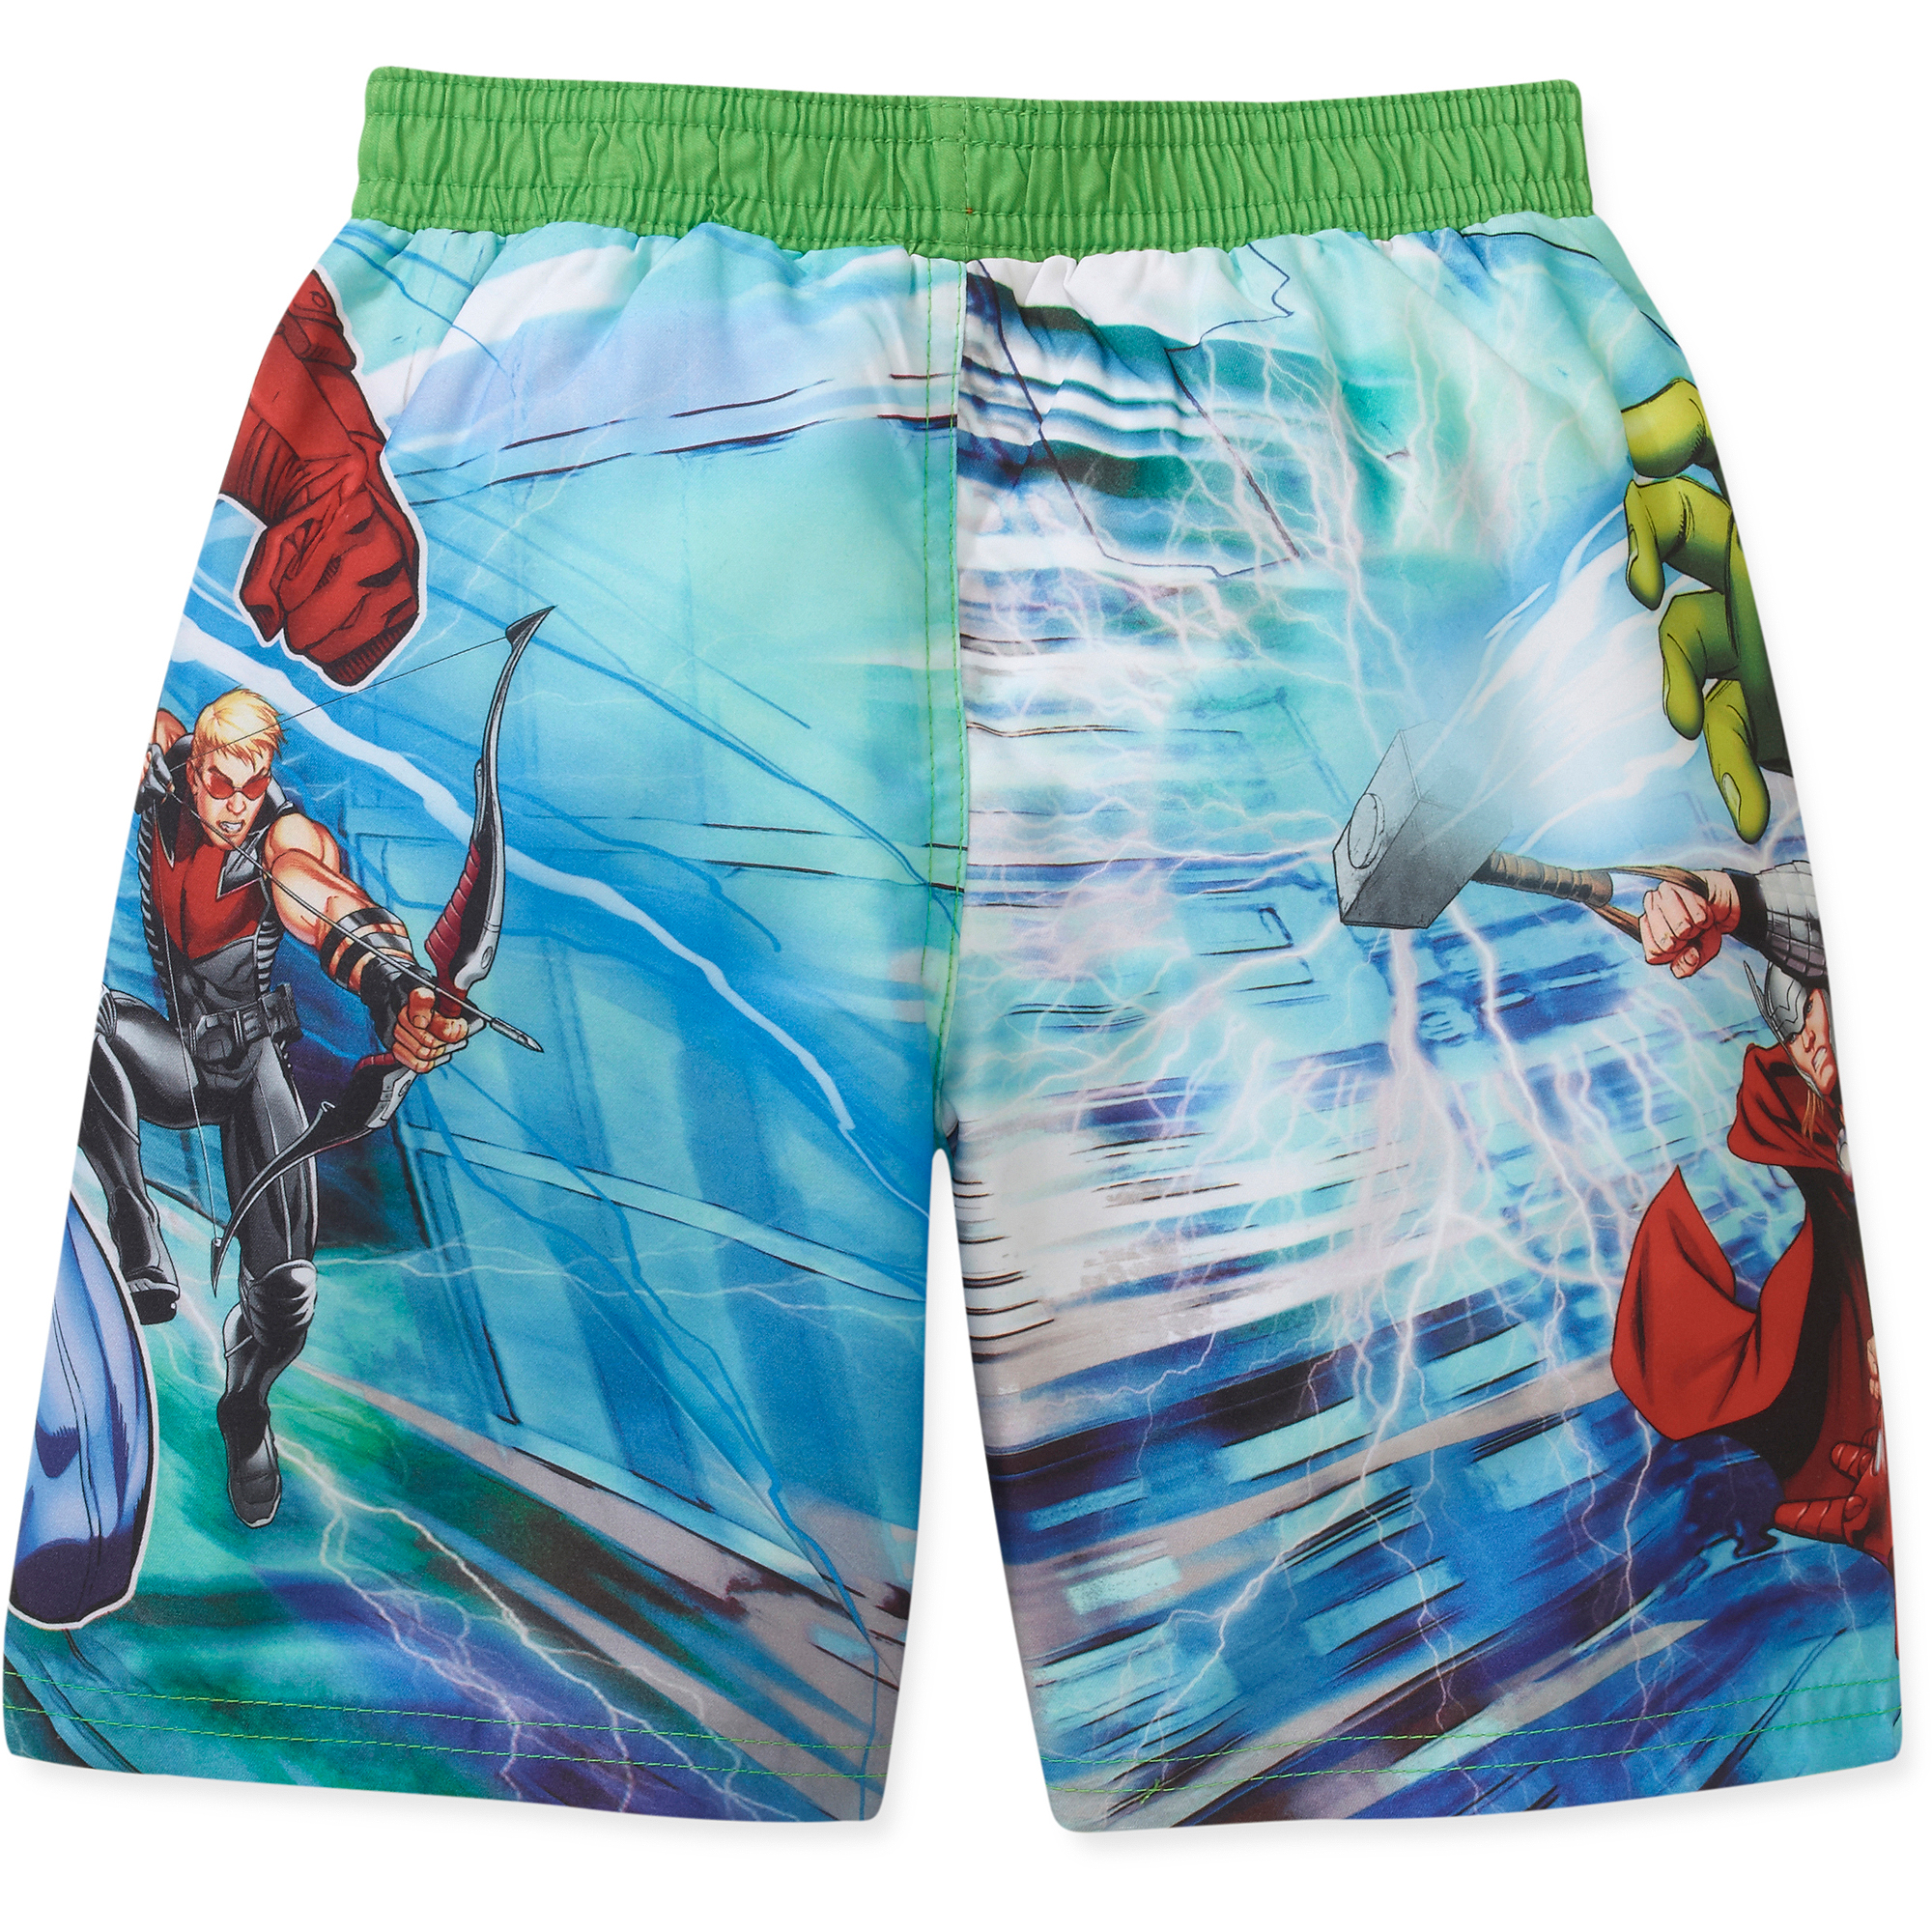 Marvel Avengers Baby Boys' Swim Trunks